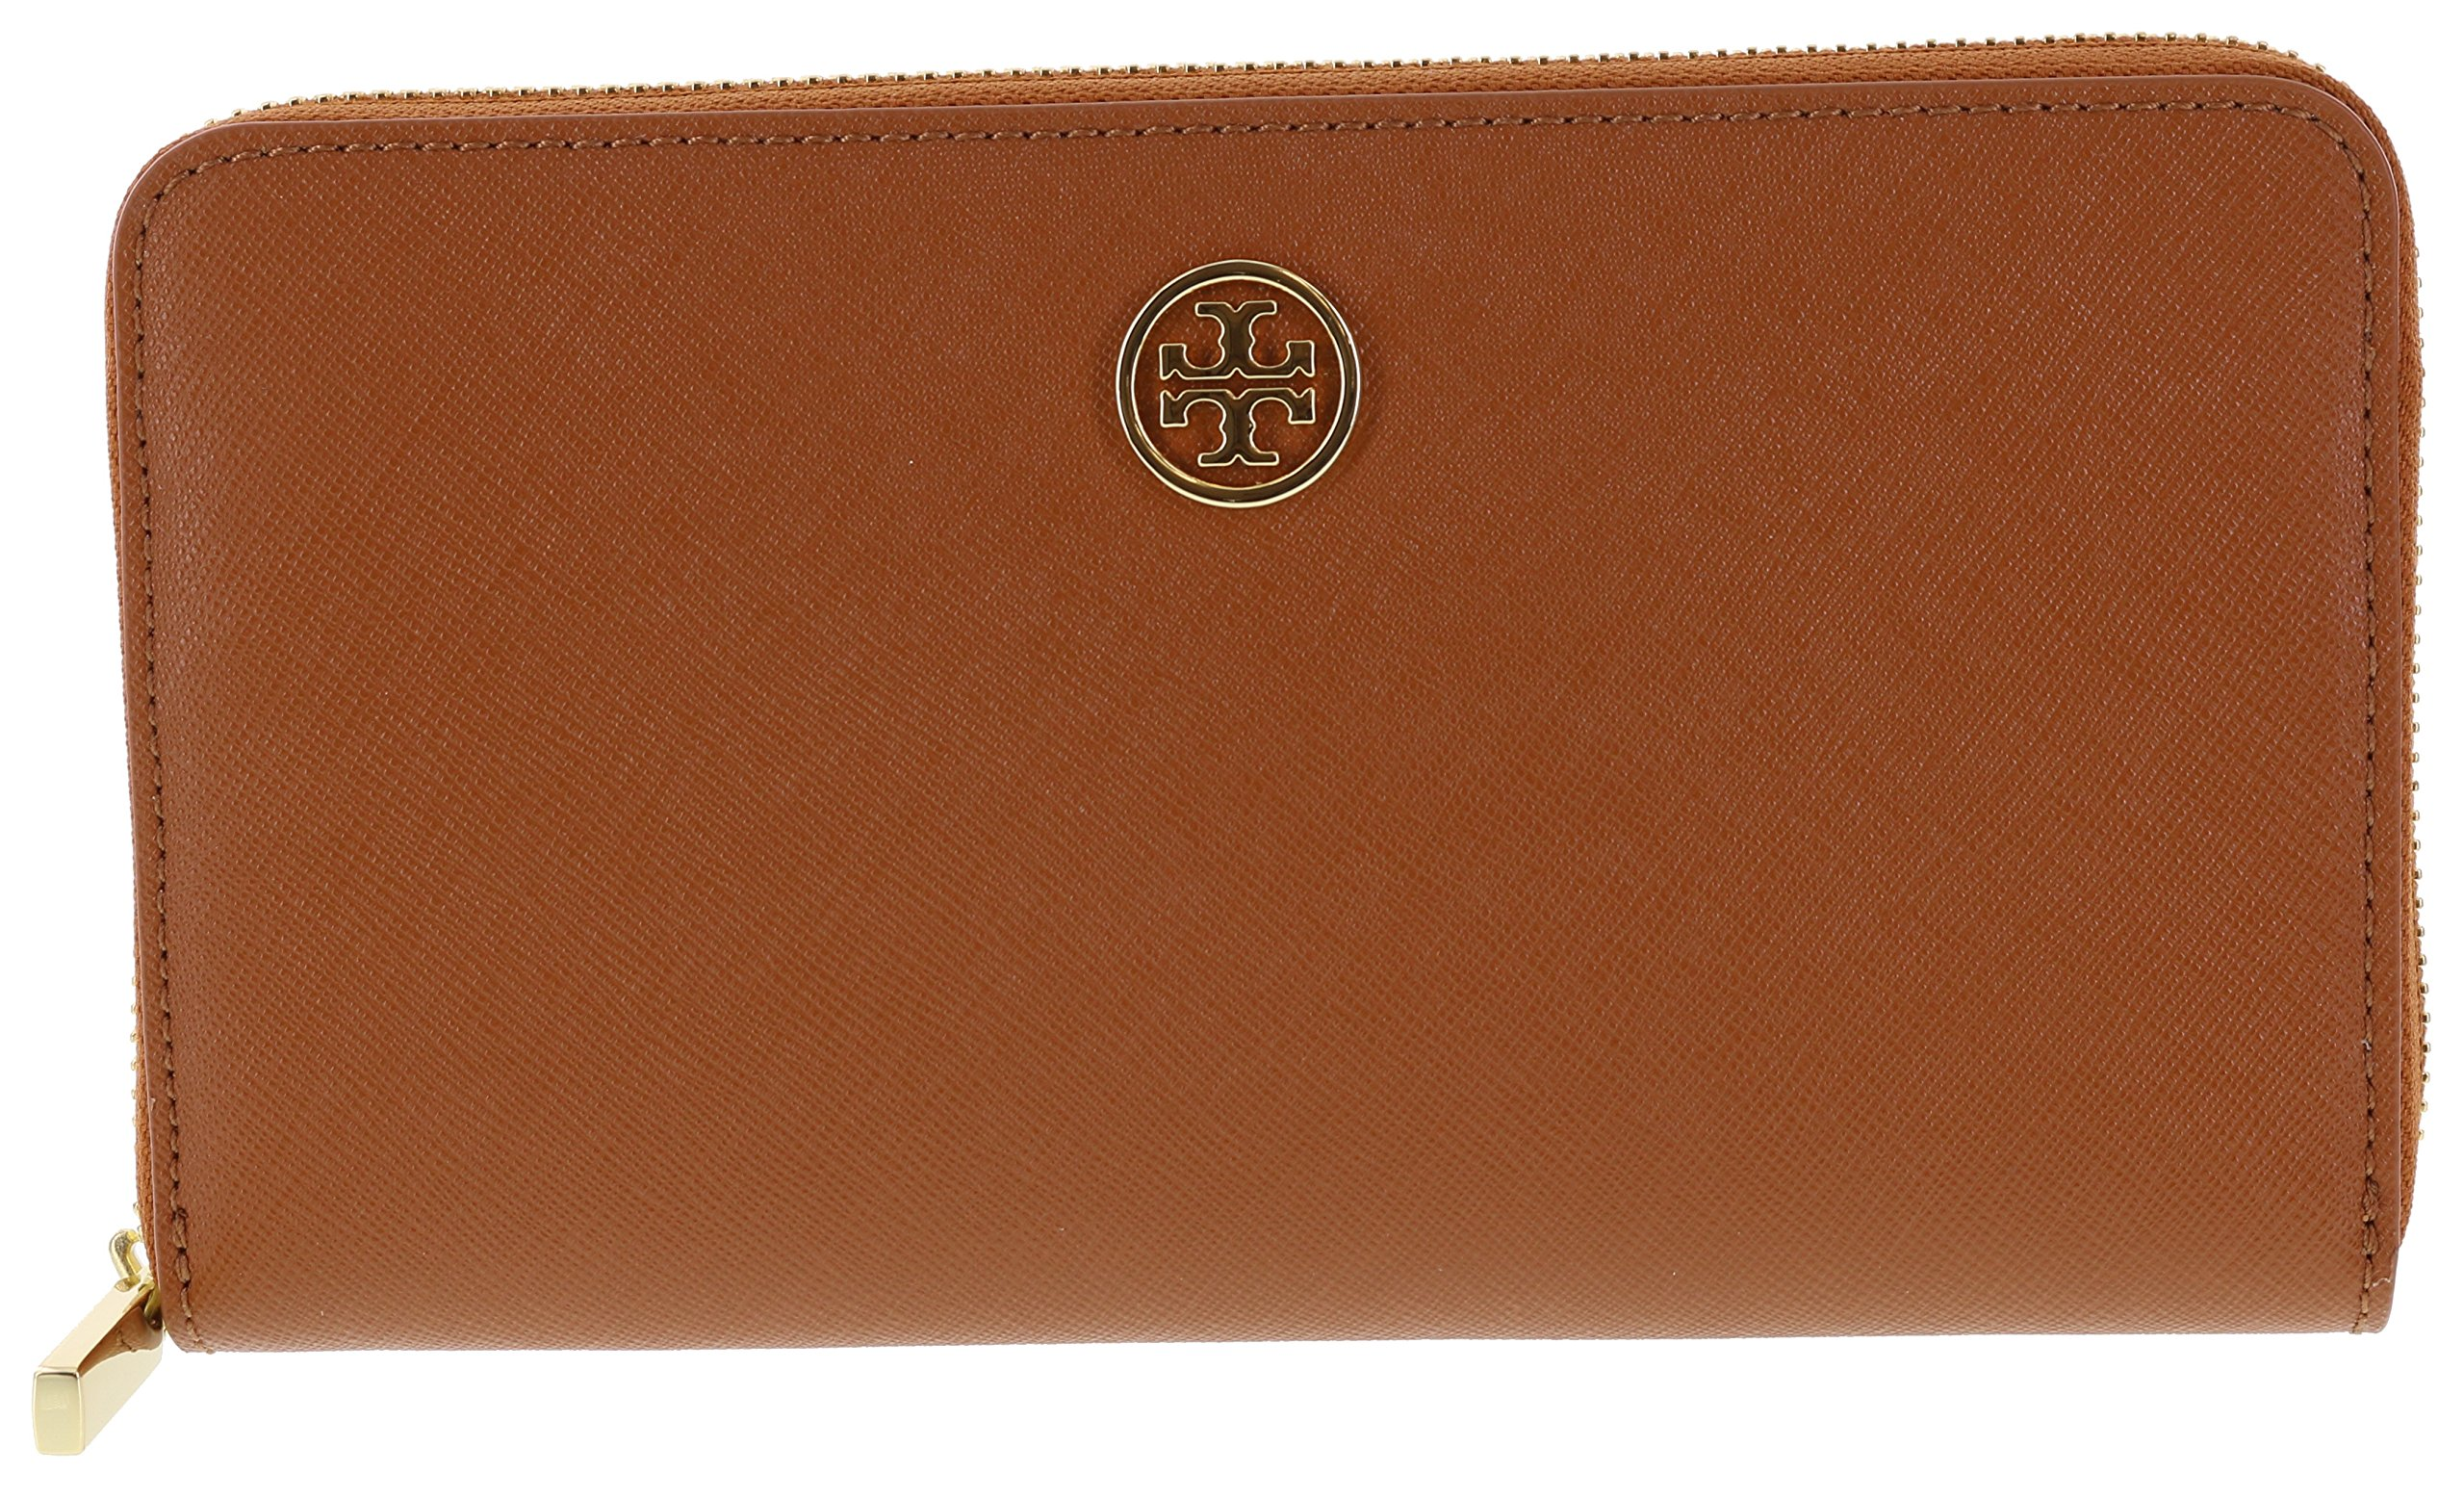 Tory Burch Robinson Zip Continental Wallet in Saffiano Leather, Style No. 33650 (Luggage) by Tory Burch